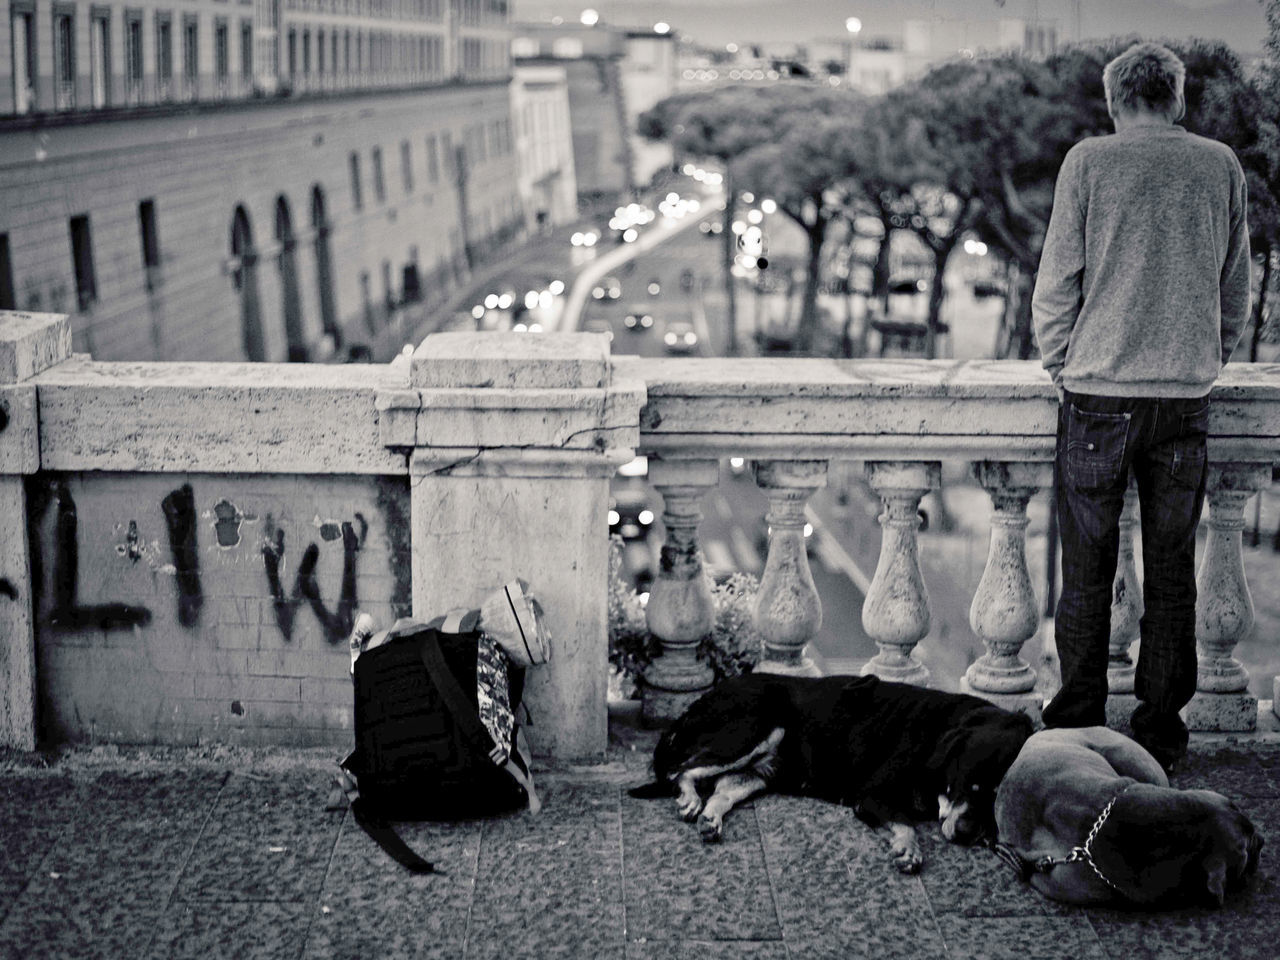 Rear View Of Man With Dogs Standing On Footbridge In City